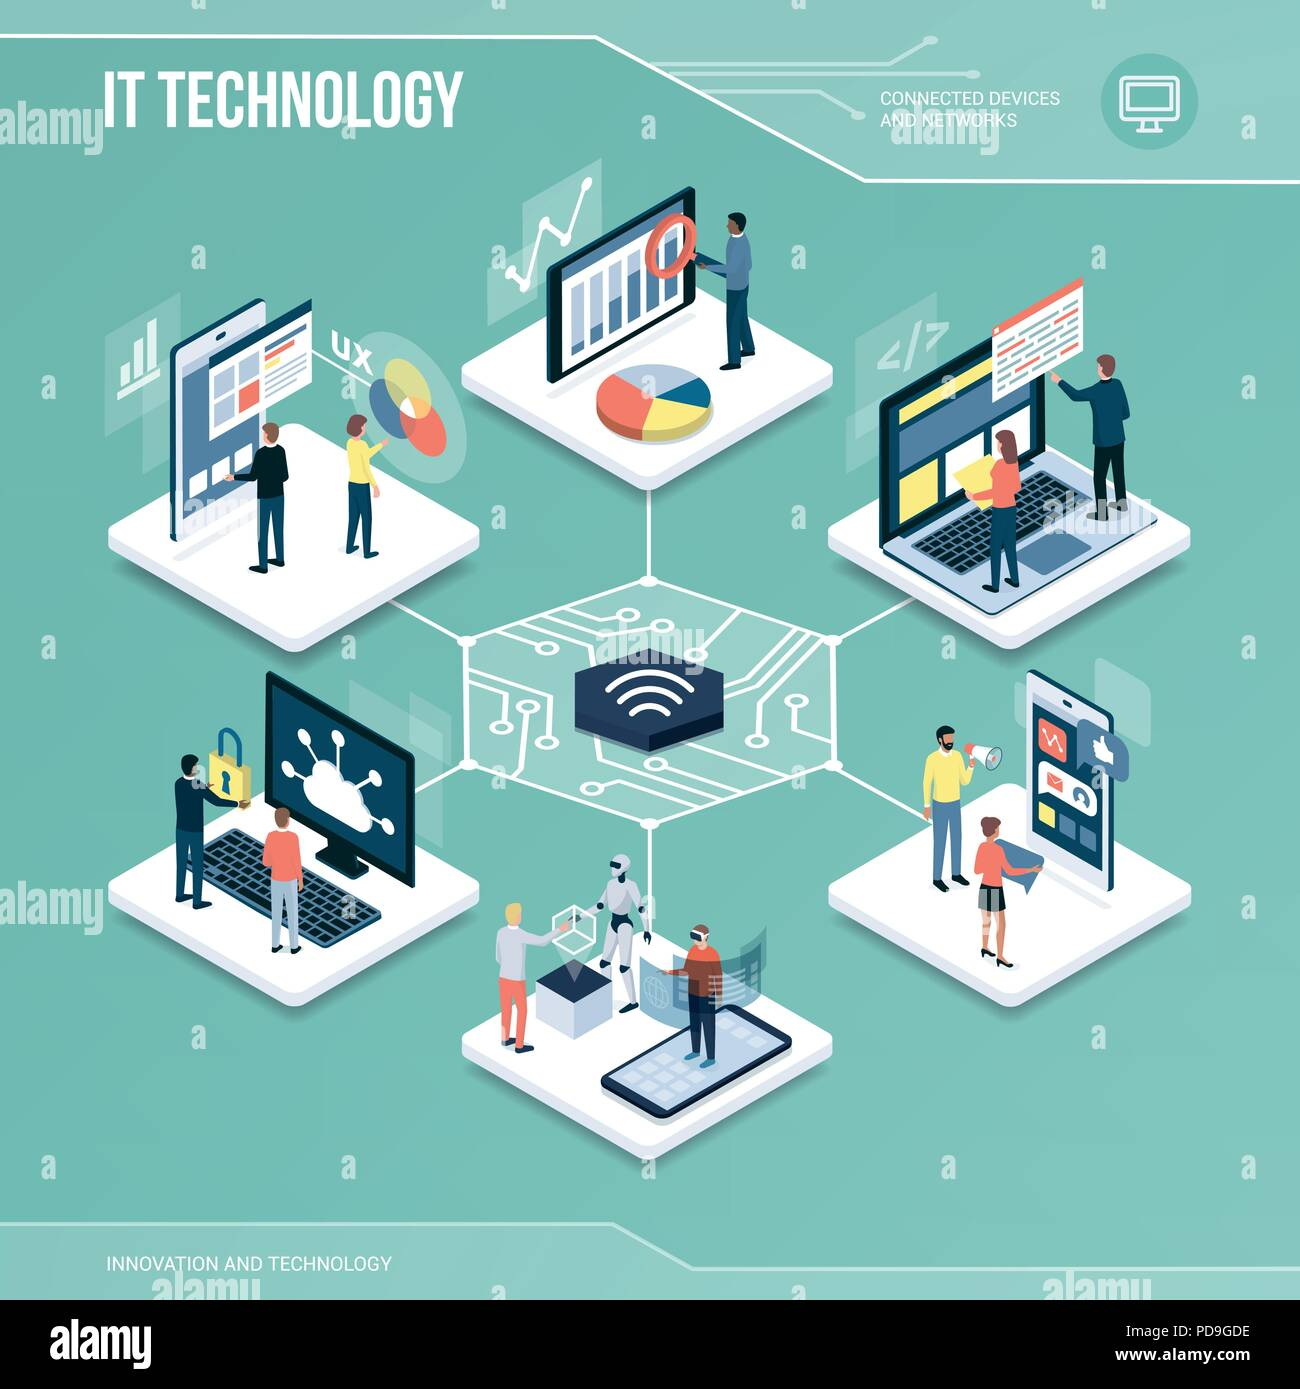 Digital core: IT technology, marketing and networks isometric infographic with people - Stock Vector